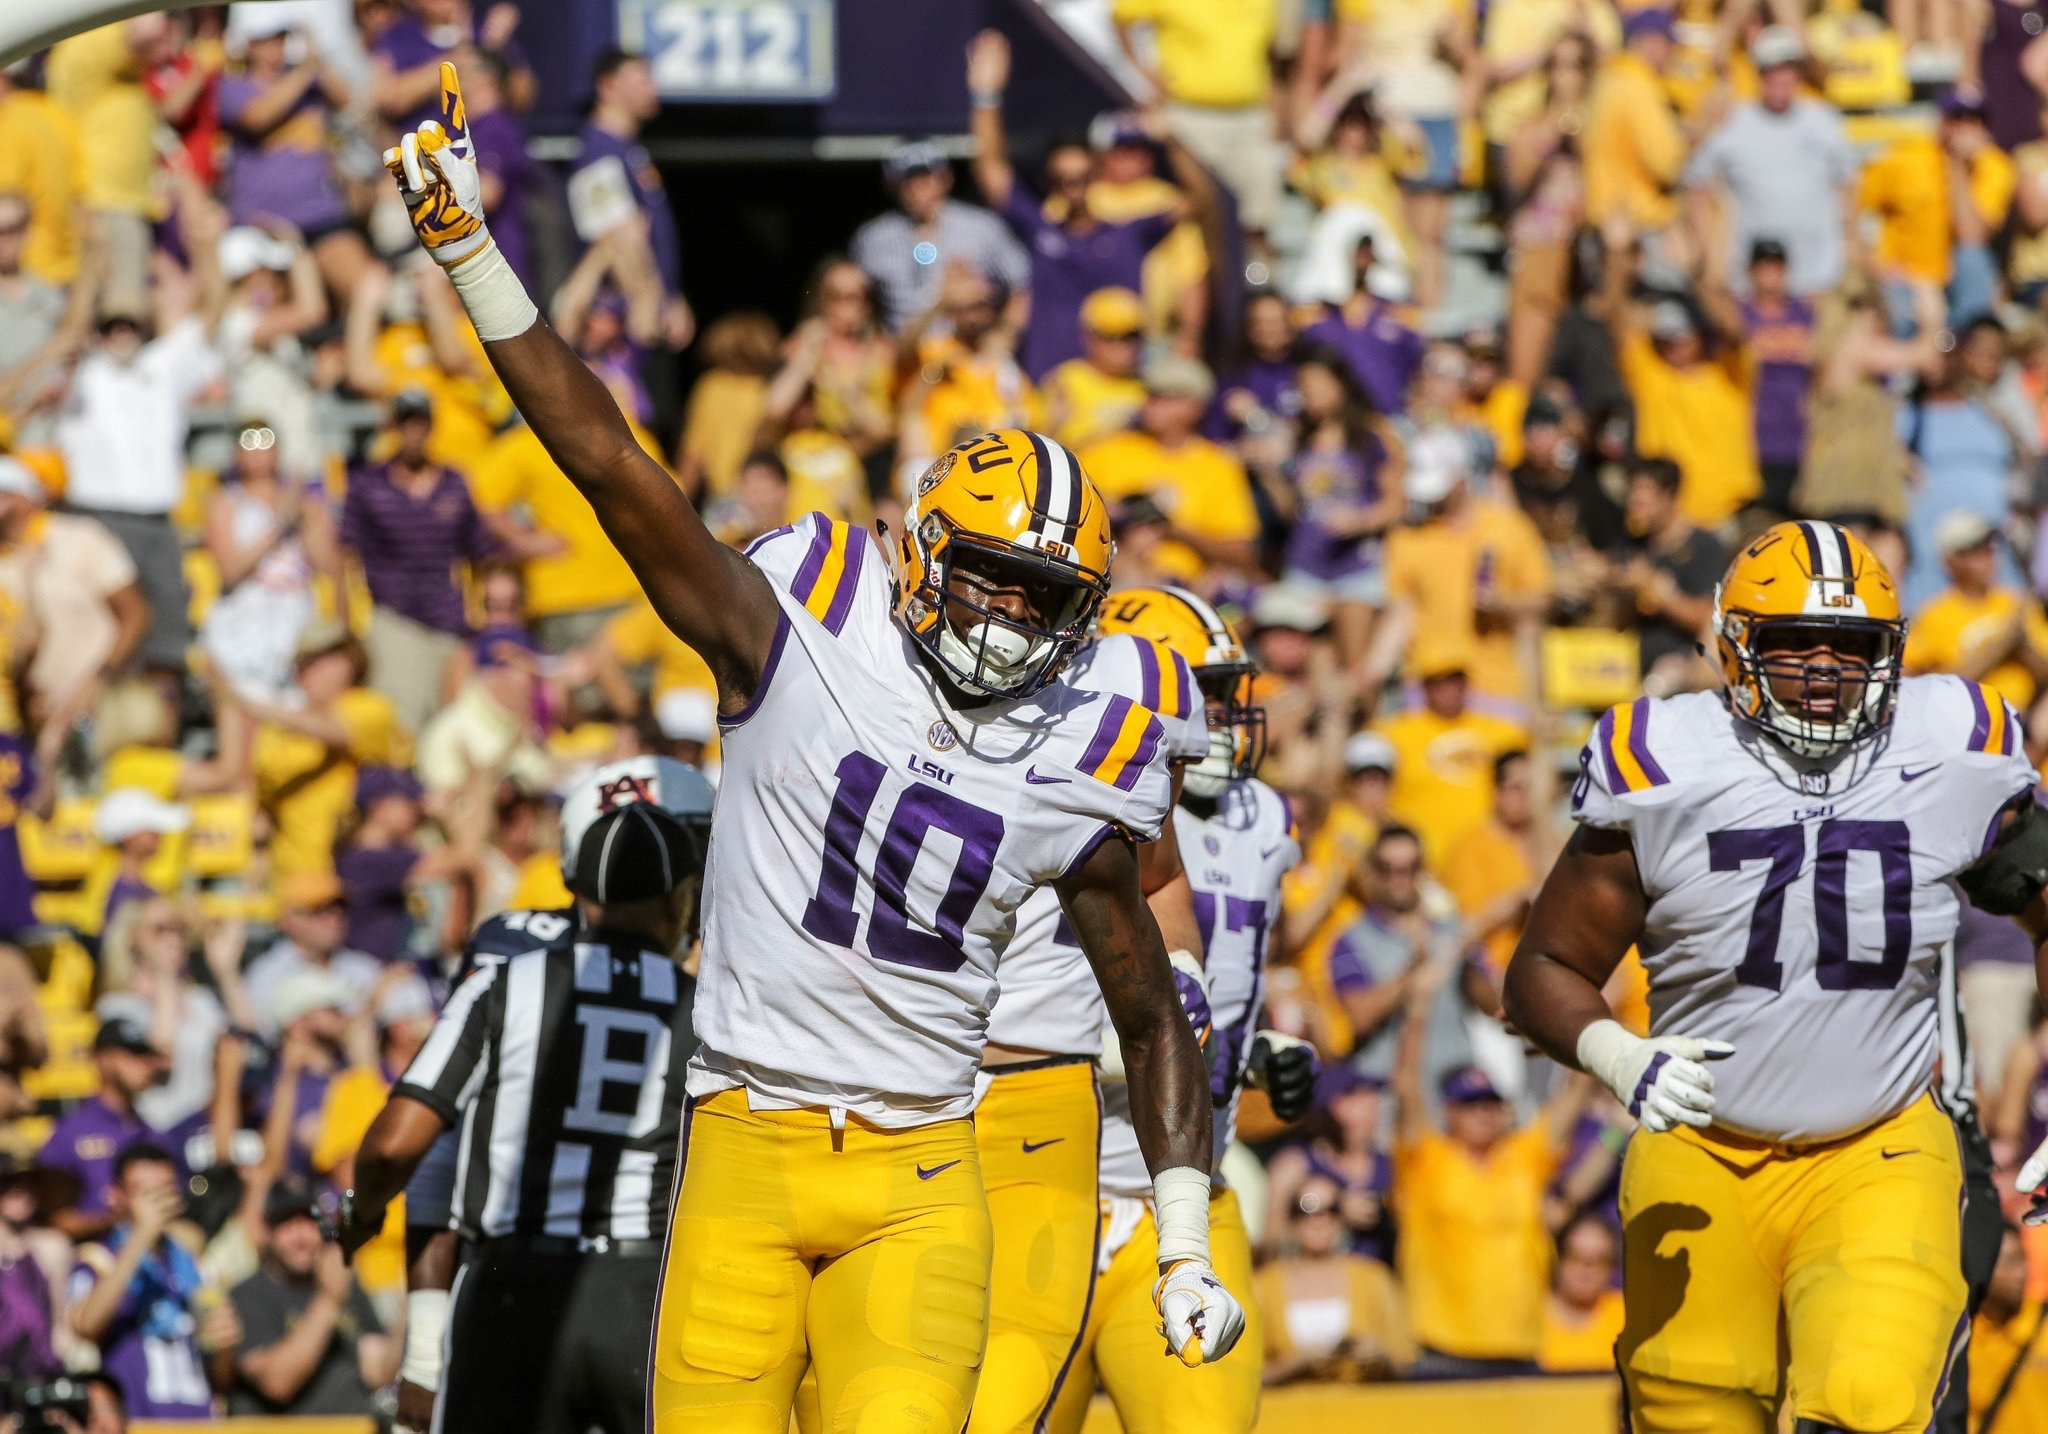 LSU takes momentum to Oxford vs. Ole Miss